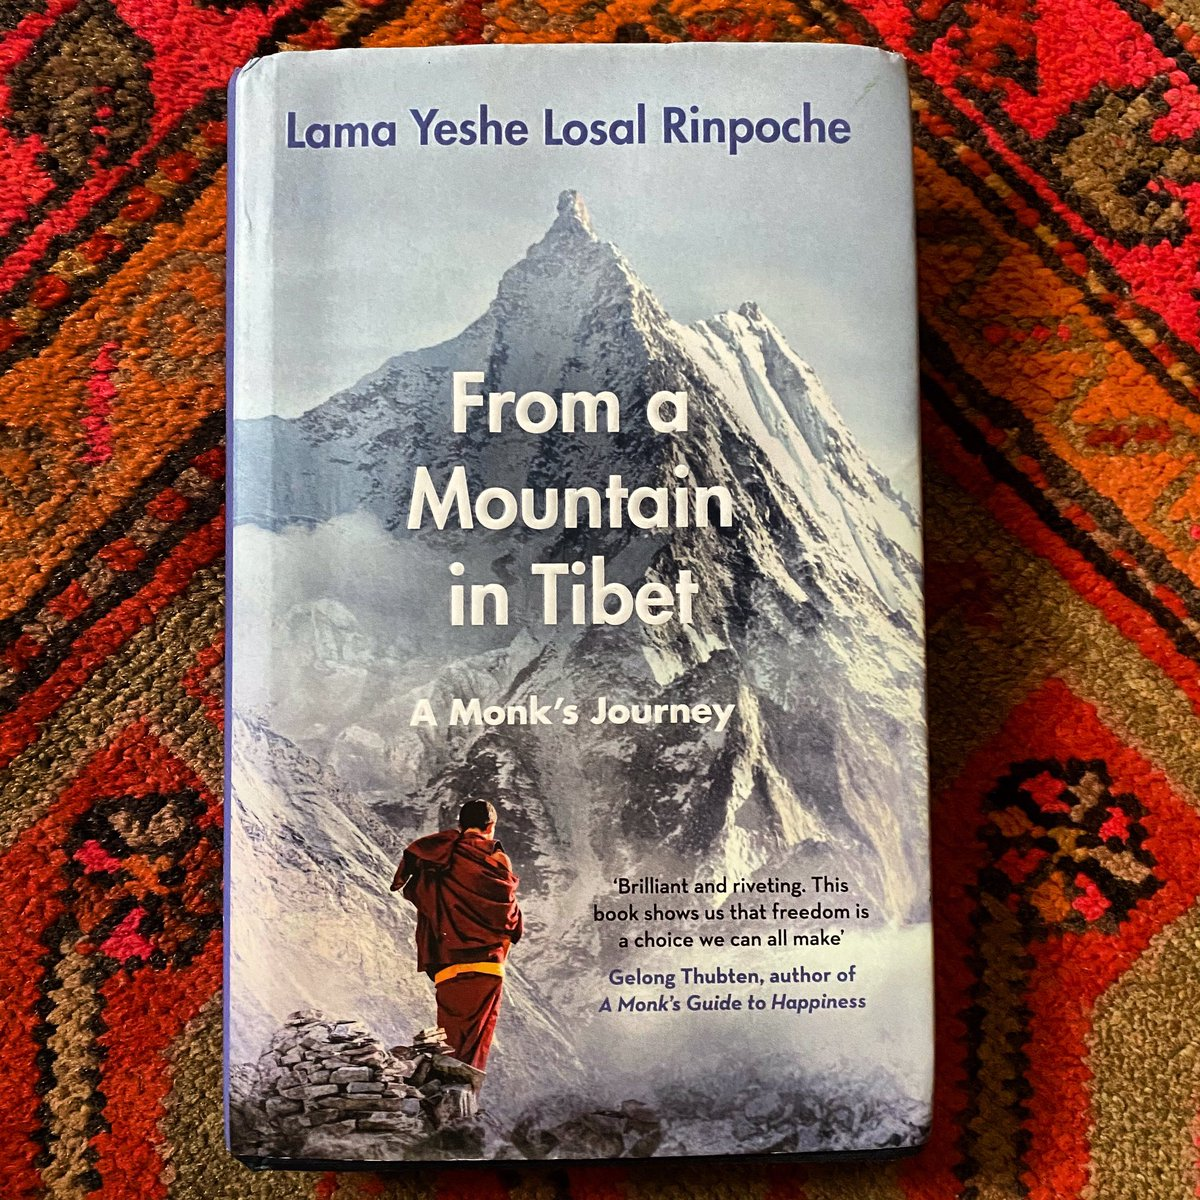 Beautiful book by Lama Yeshe Losal Rinpoche, who I knew from the time he came as a refugee from Tibet. Head of Samyeling, the most beautiful Tibetan monastery in Europe, in Scotland. His brother Akong Rinpoche, who founded Samyeling, was my dharma brother. #Tibetan #Buddhism.